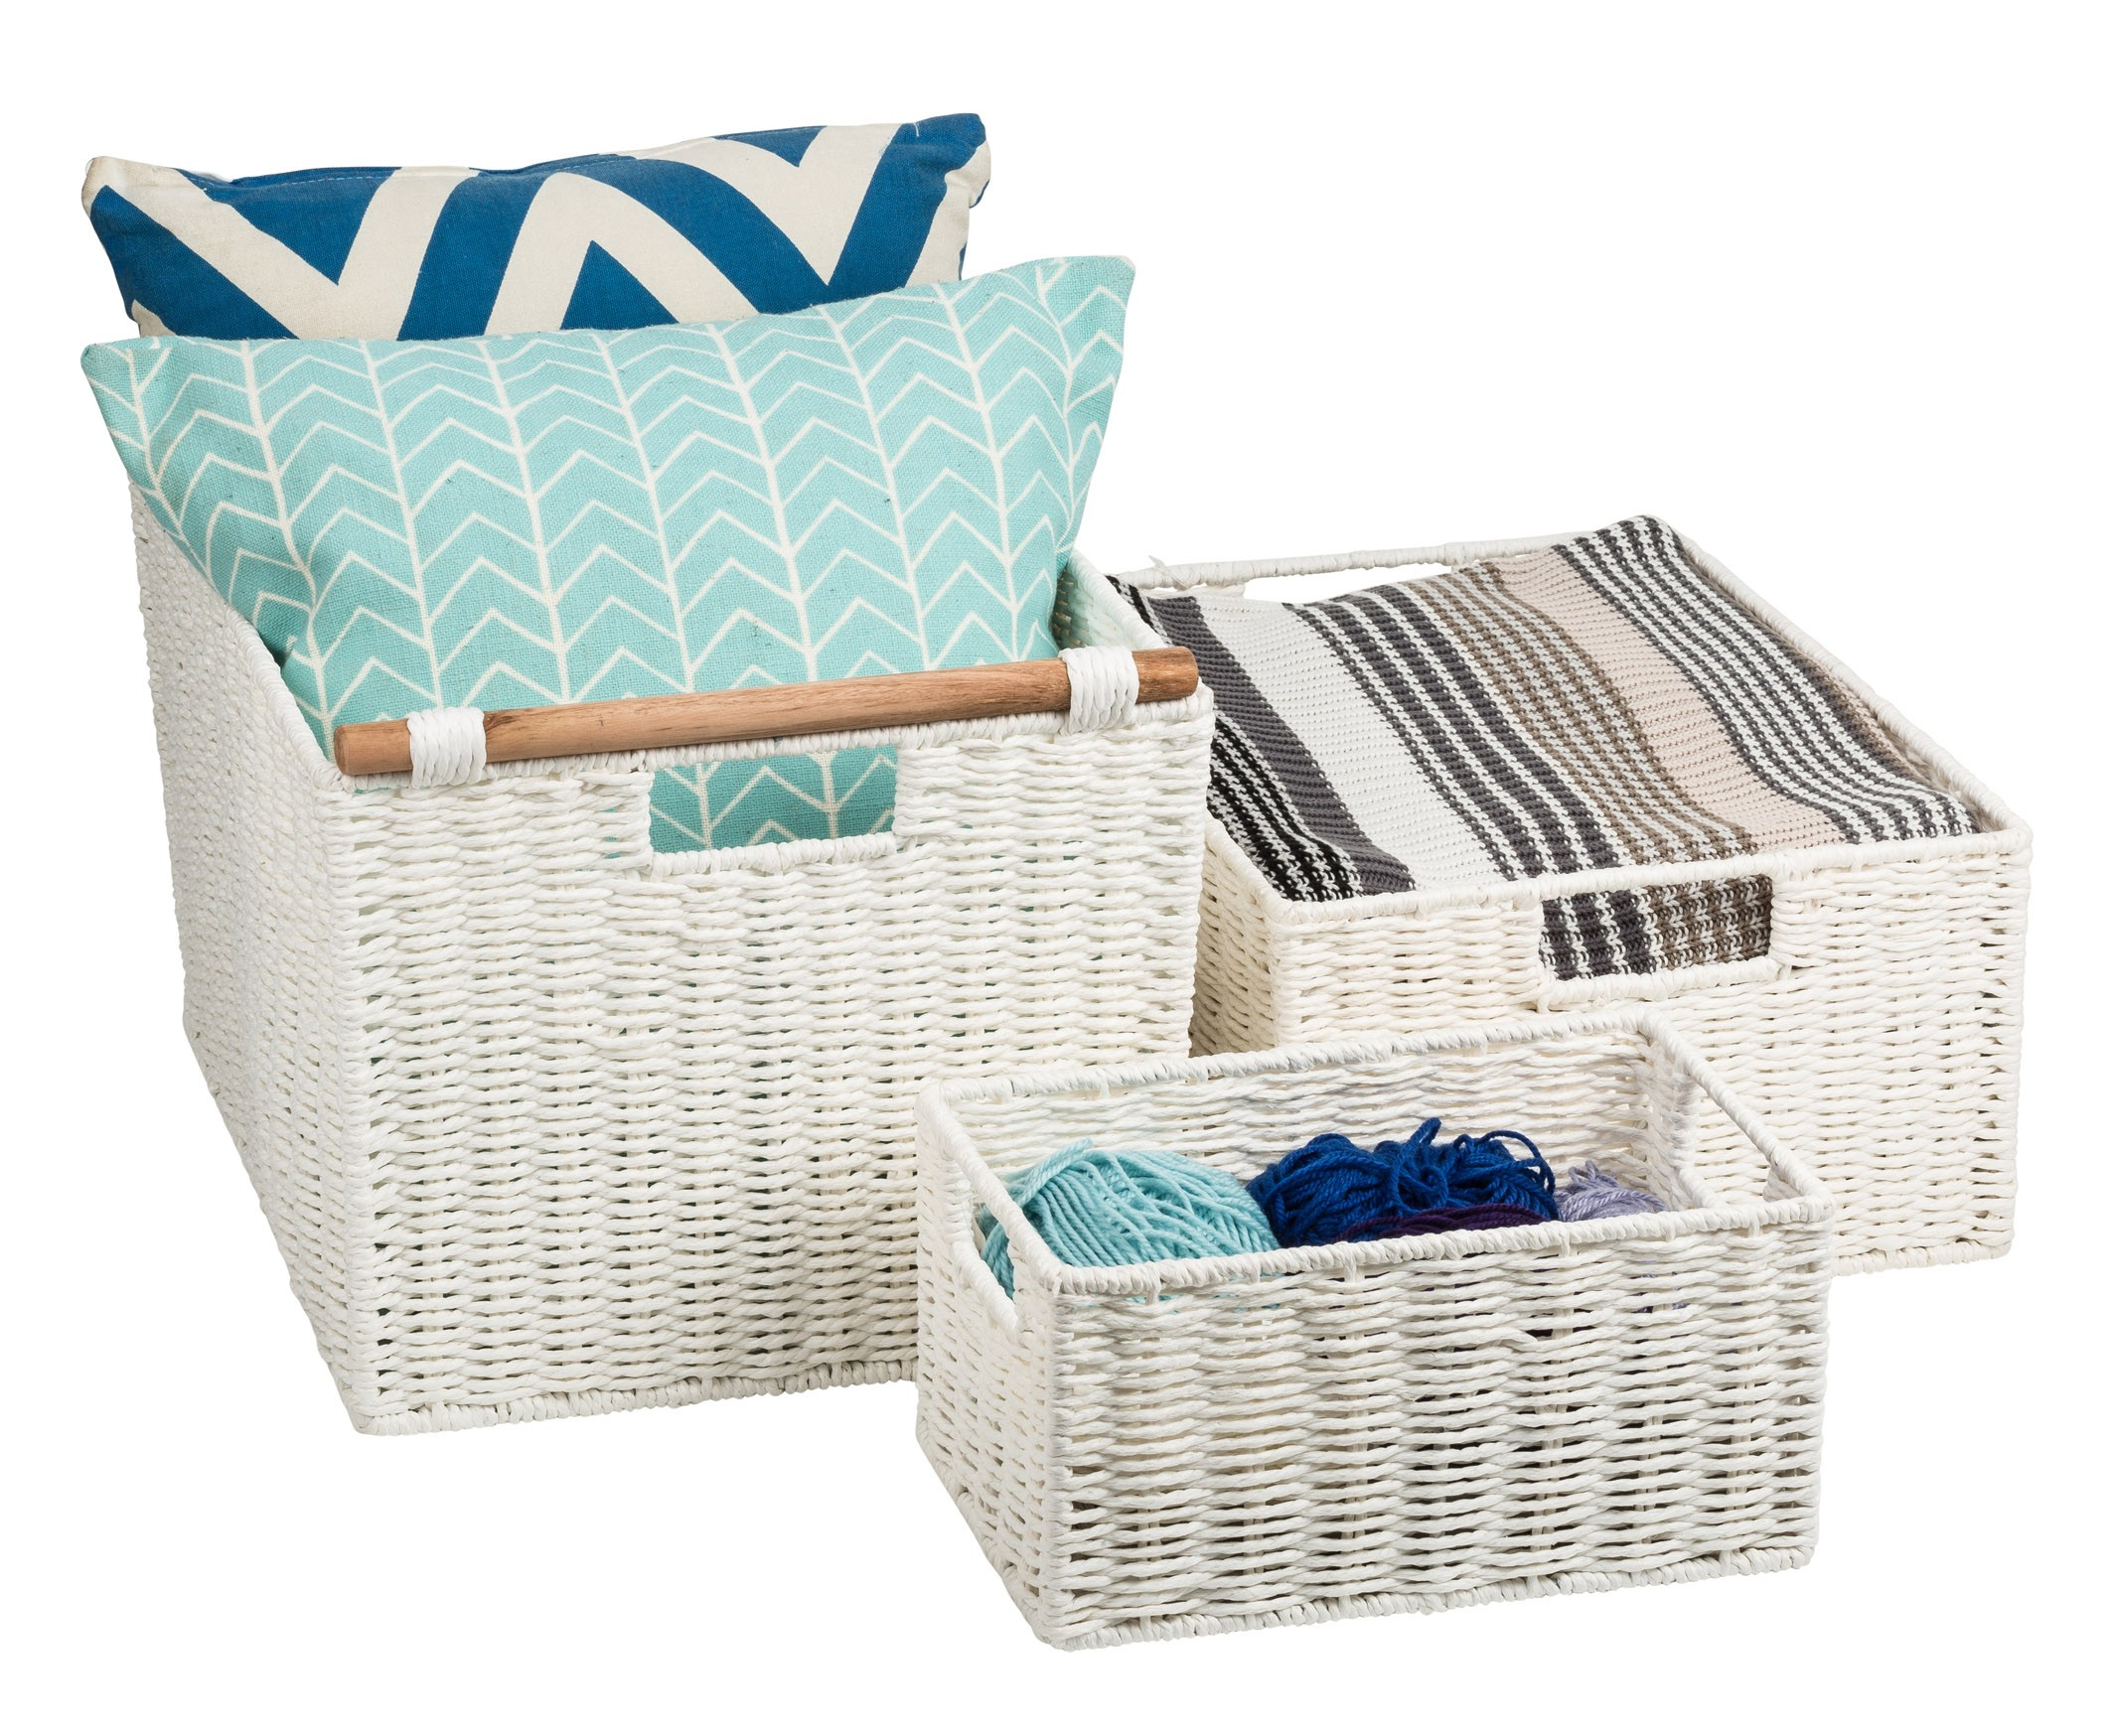 Fabric Laundry Hamper Nz: Pastiche Rope Basket White Large From Storage Box